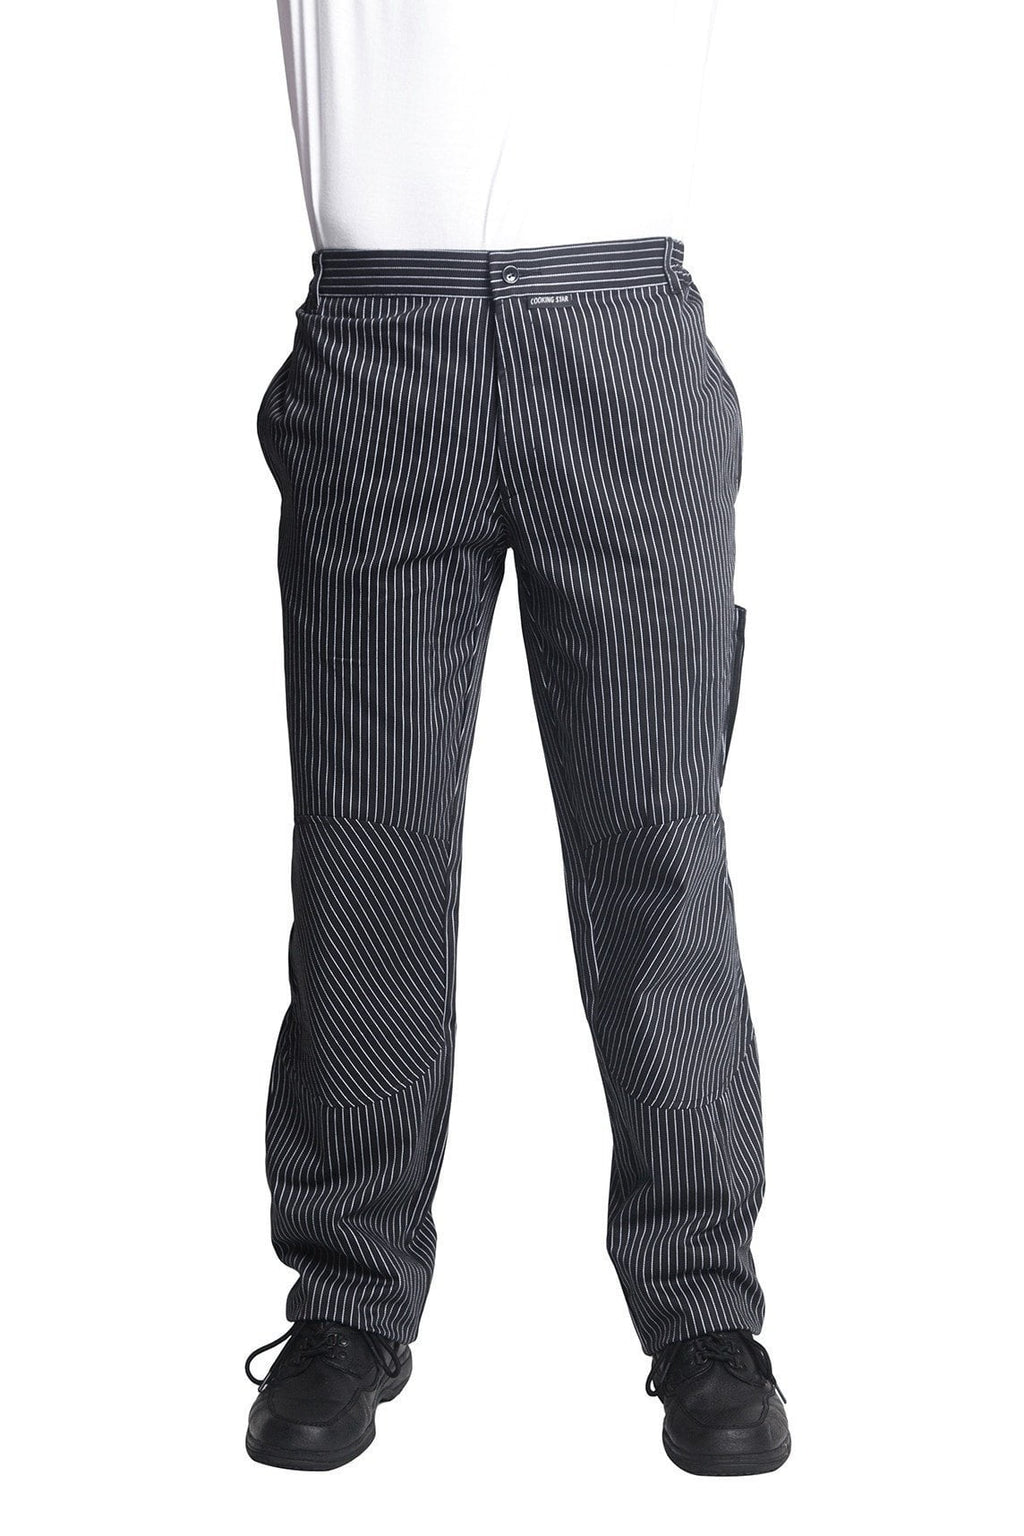 Bragard Miami Chef Pants Main